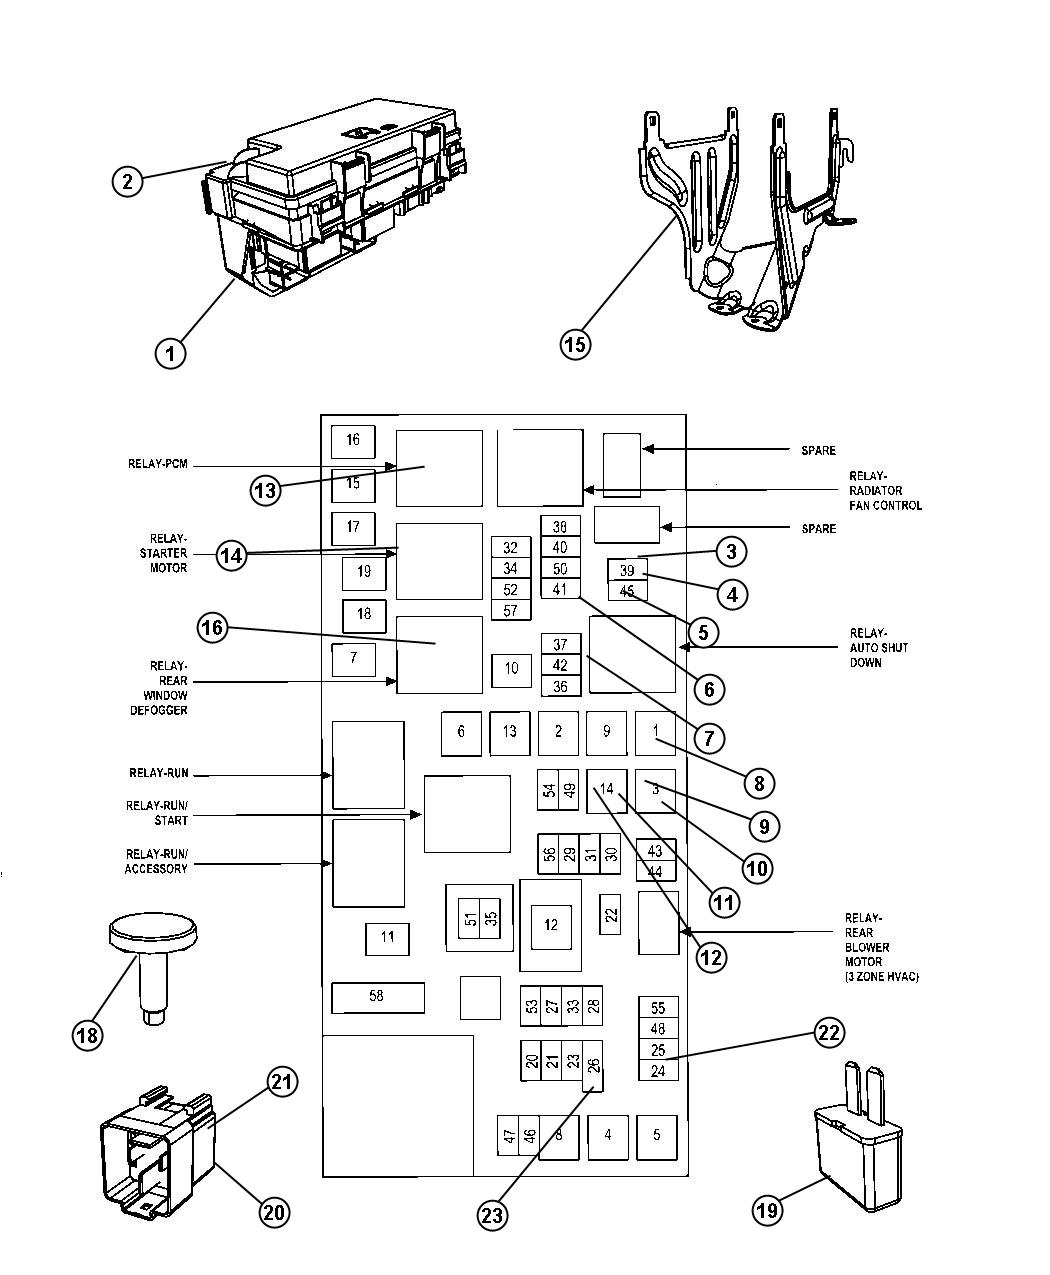 2010 dodge nitro cover  totally integrated power module